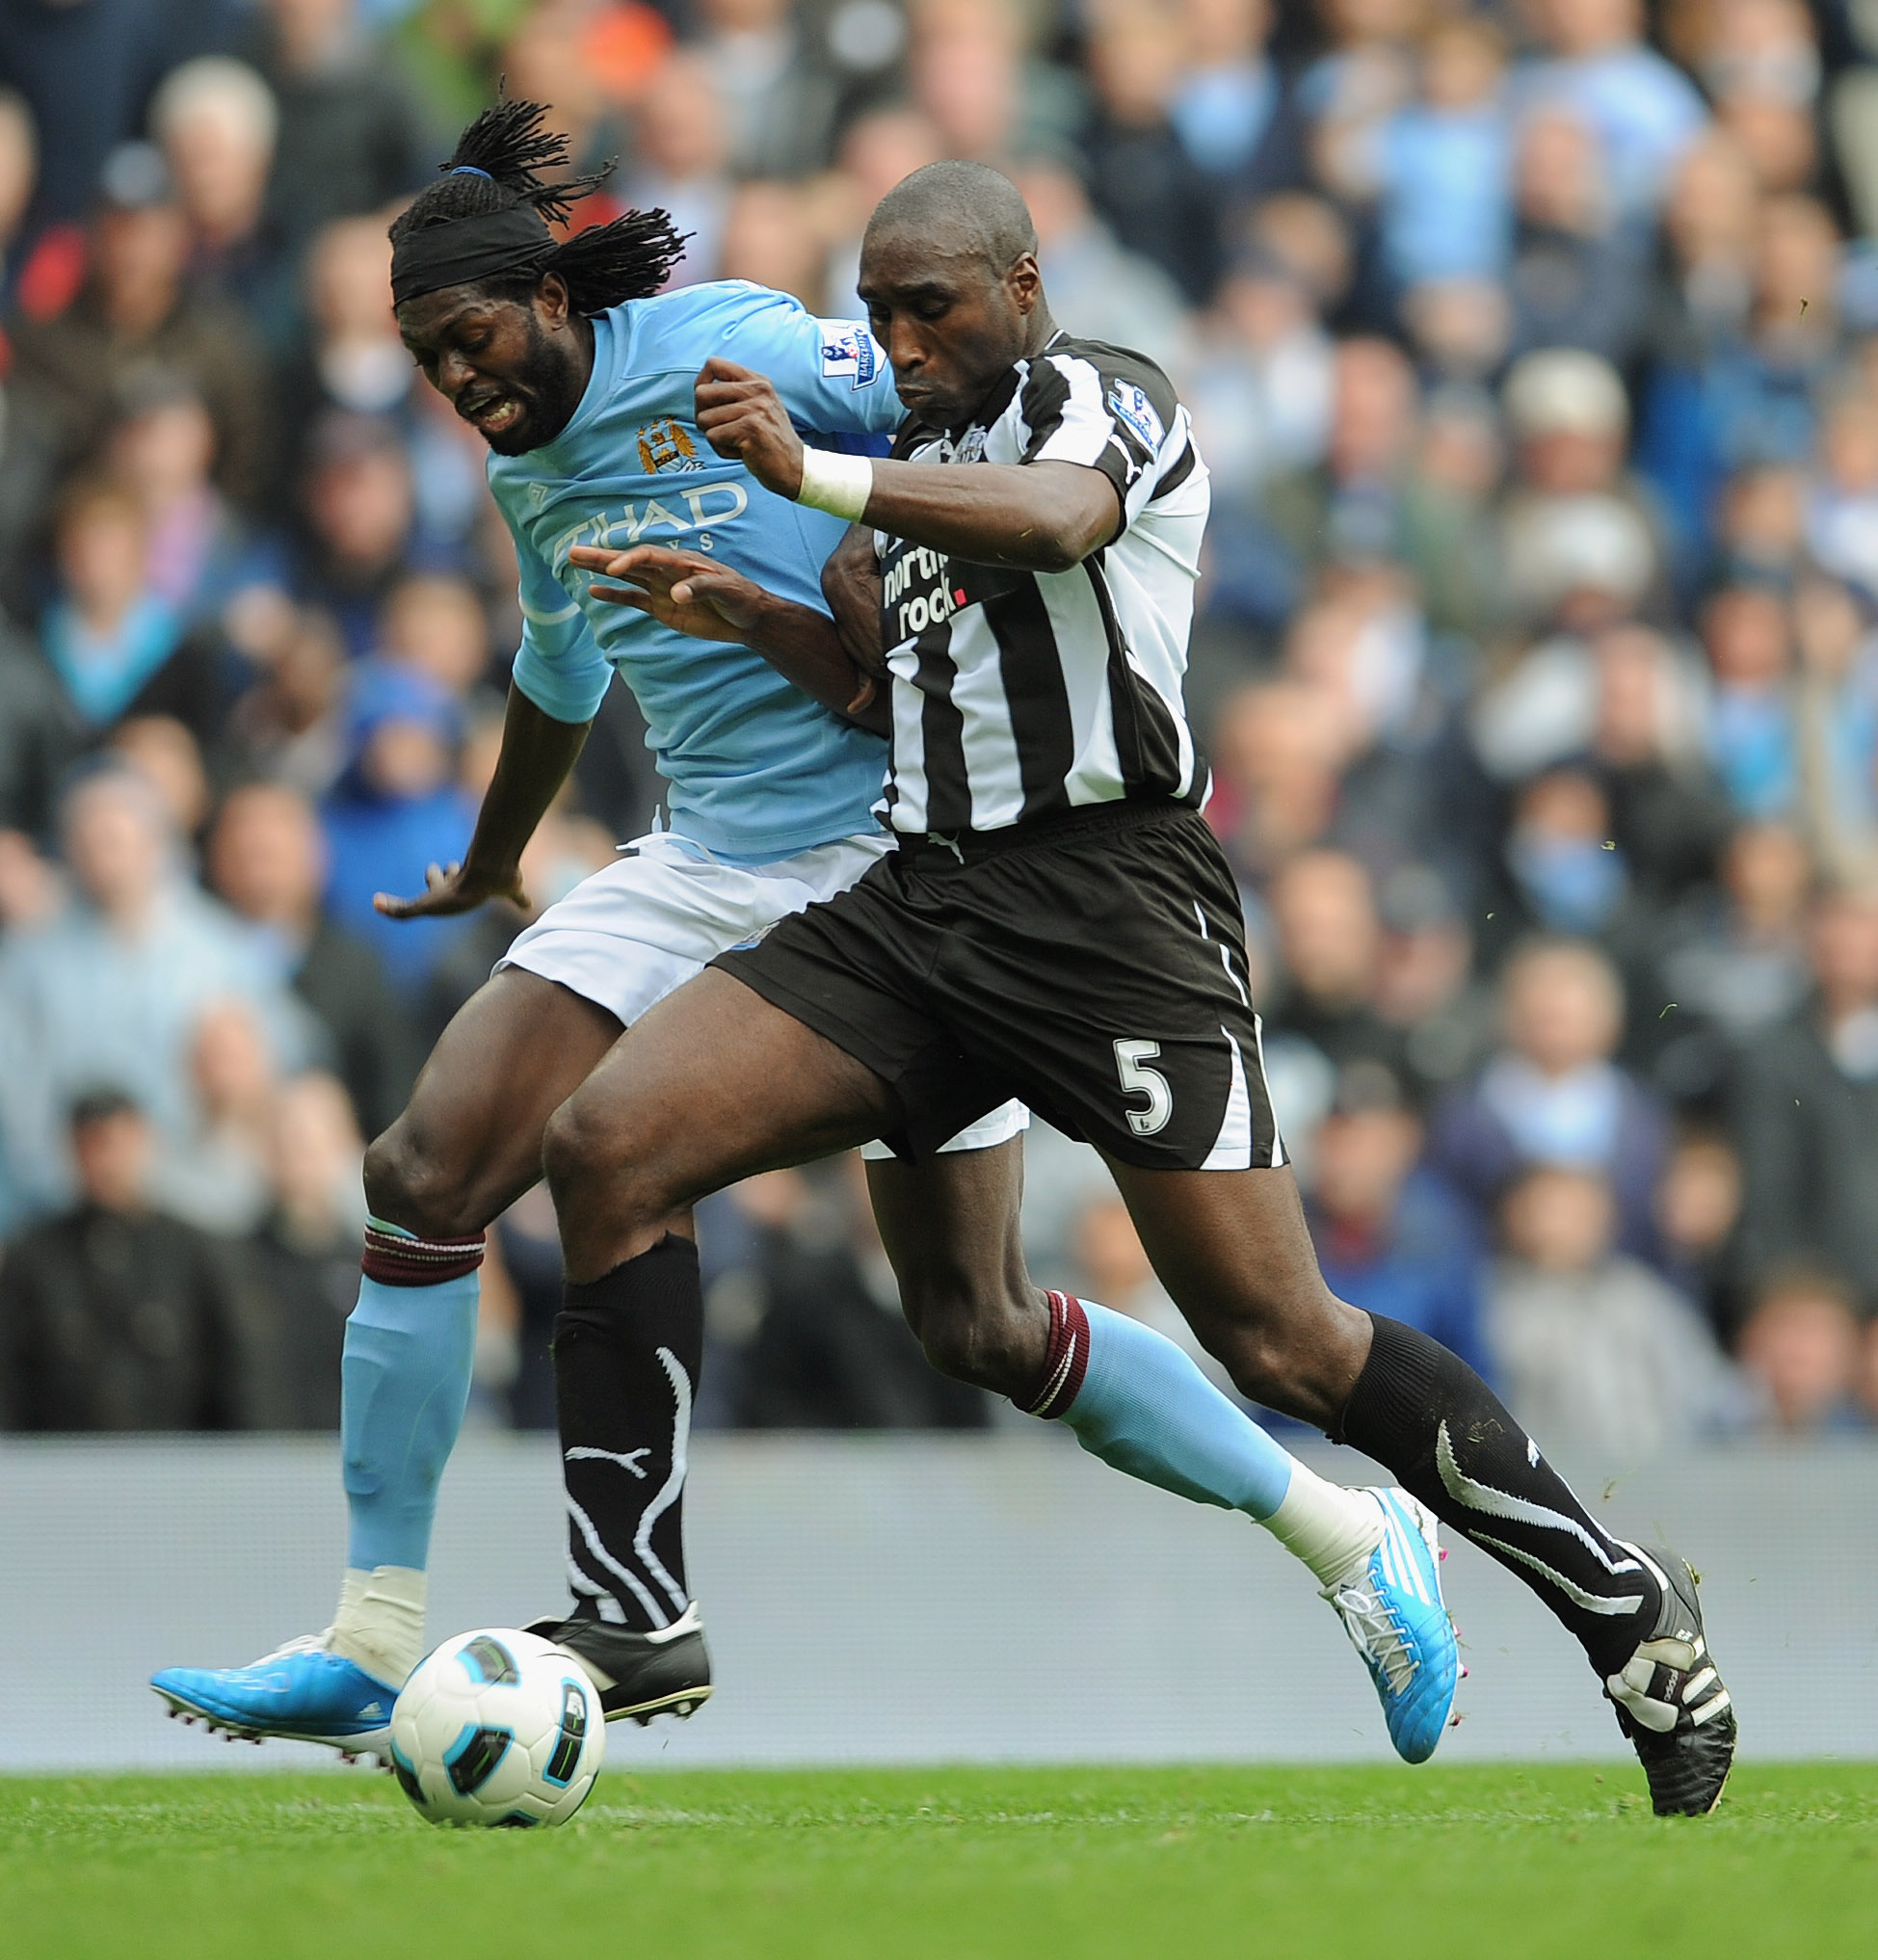 MANCHESTER, ENGLAND - OCTOBER 03:  Emmanuel Adebayor of Manchester City in action with Sol Campbell of Newcastle during the Barclays Premier League match between Manchester City and Newcastle United at the City of Manchester Stadium on October 3, 2010 in